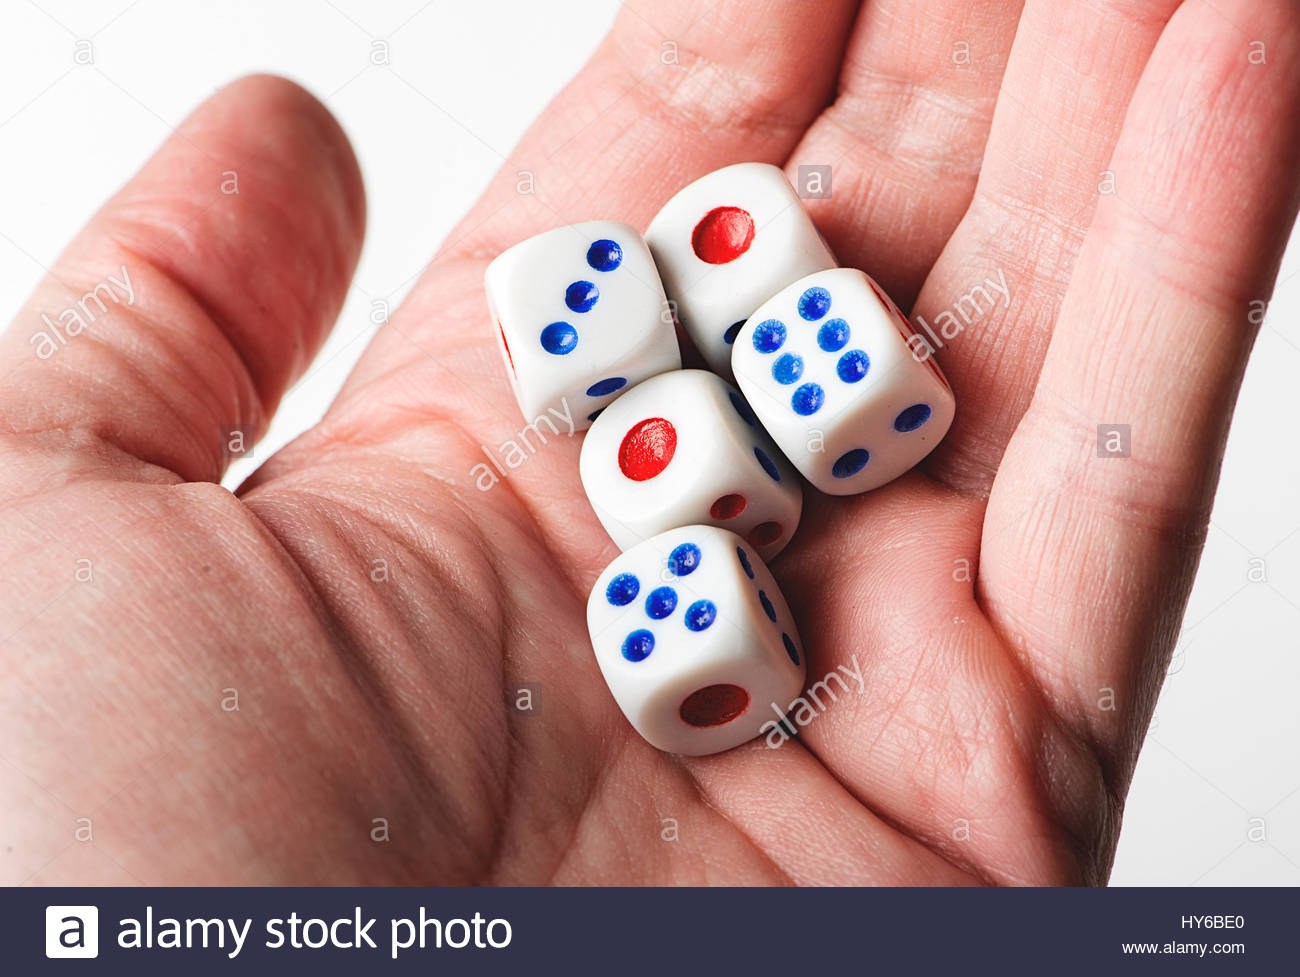 Dice on a hand. Isolated. Stock Photo